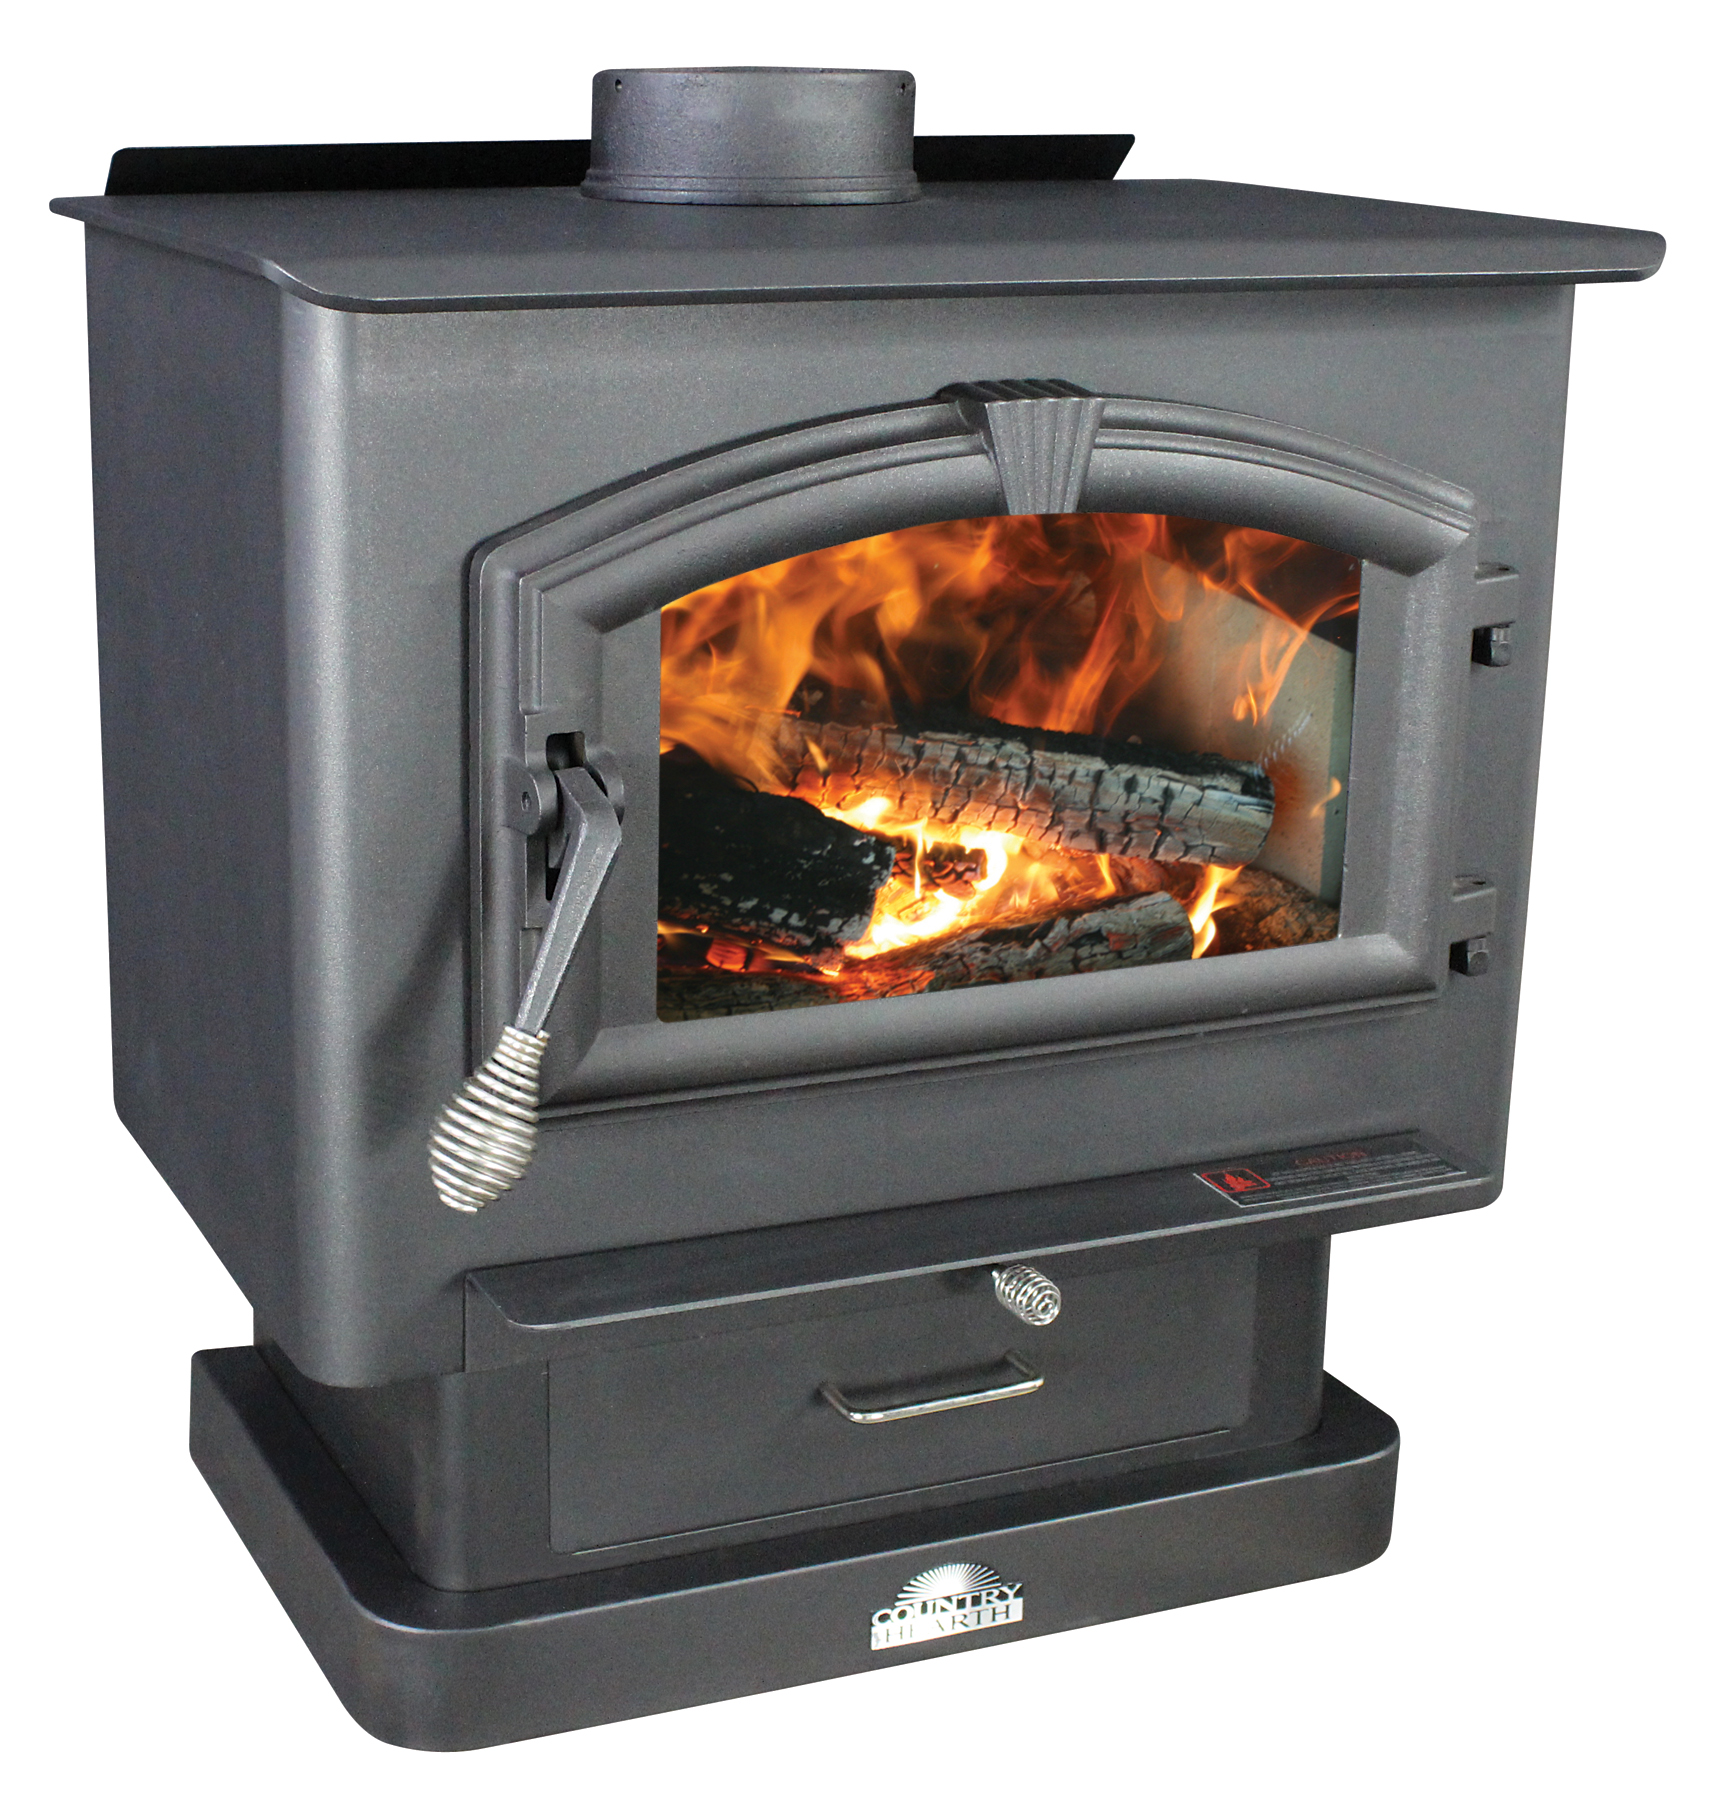 US Stove 2,000 Sq. Ft Medium EPA-Certified Wood Stove by Wood Stoves